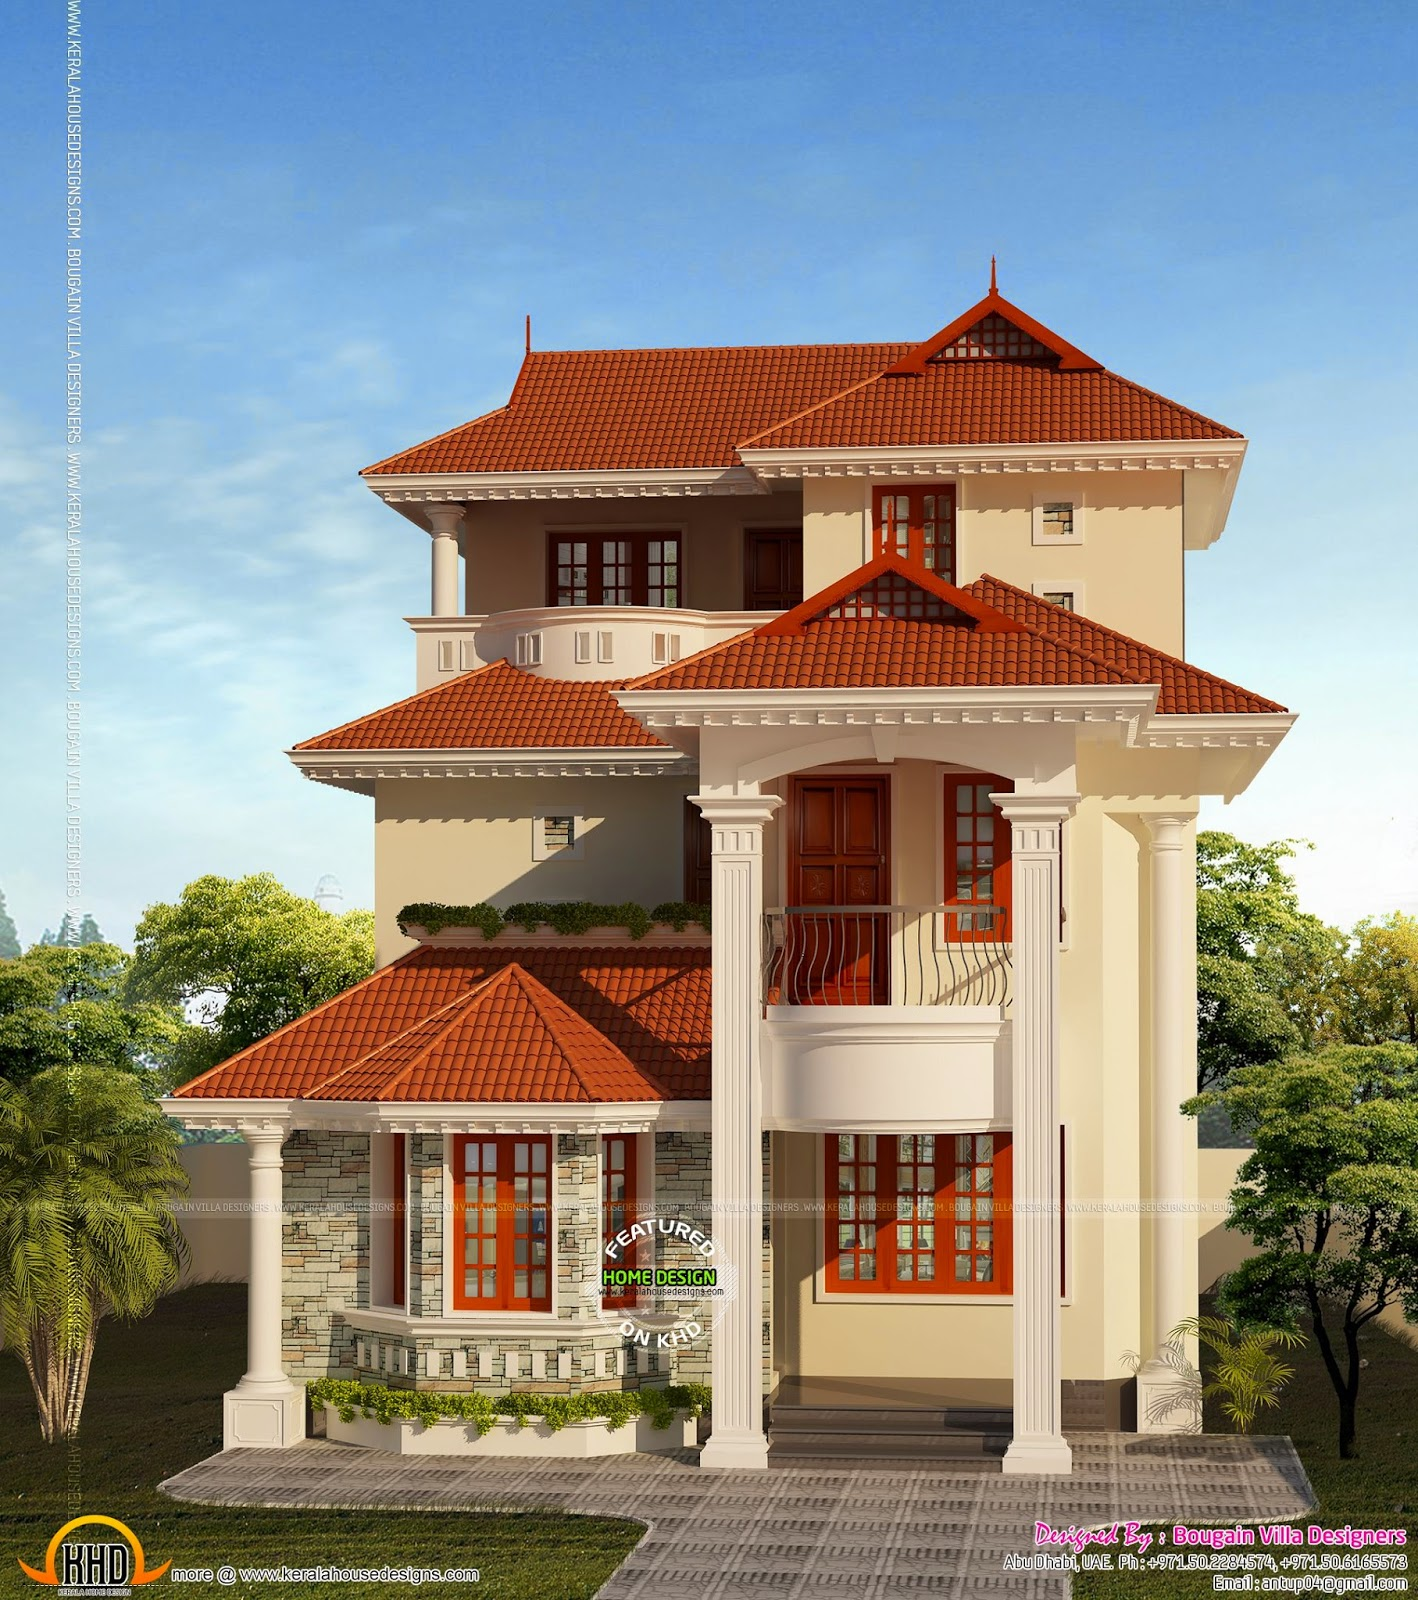 Sensational October 2014 Kerala Home Design And Floor Plans Largest Home Design Picture Inspirations Pitcheantrous